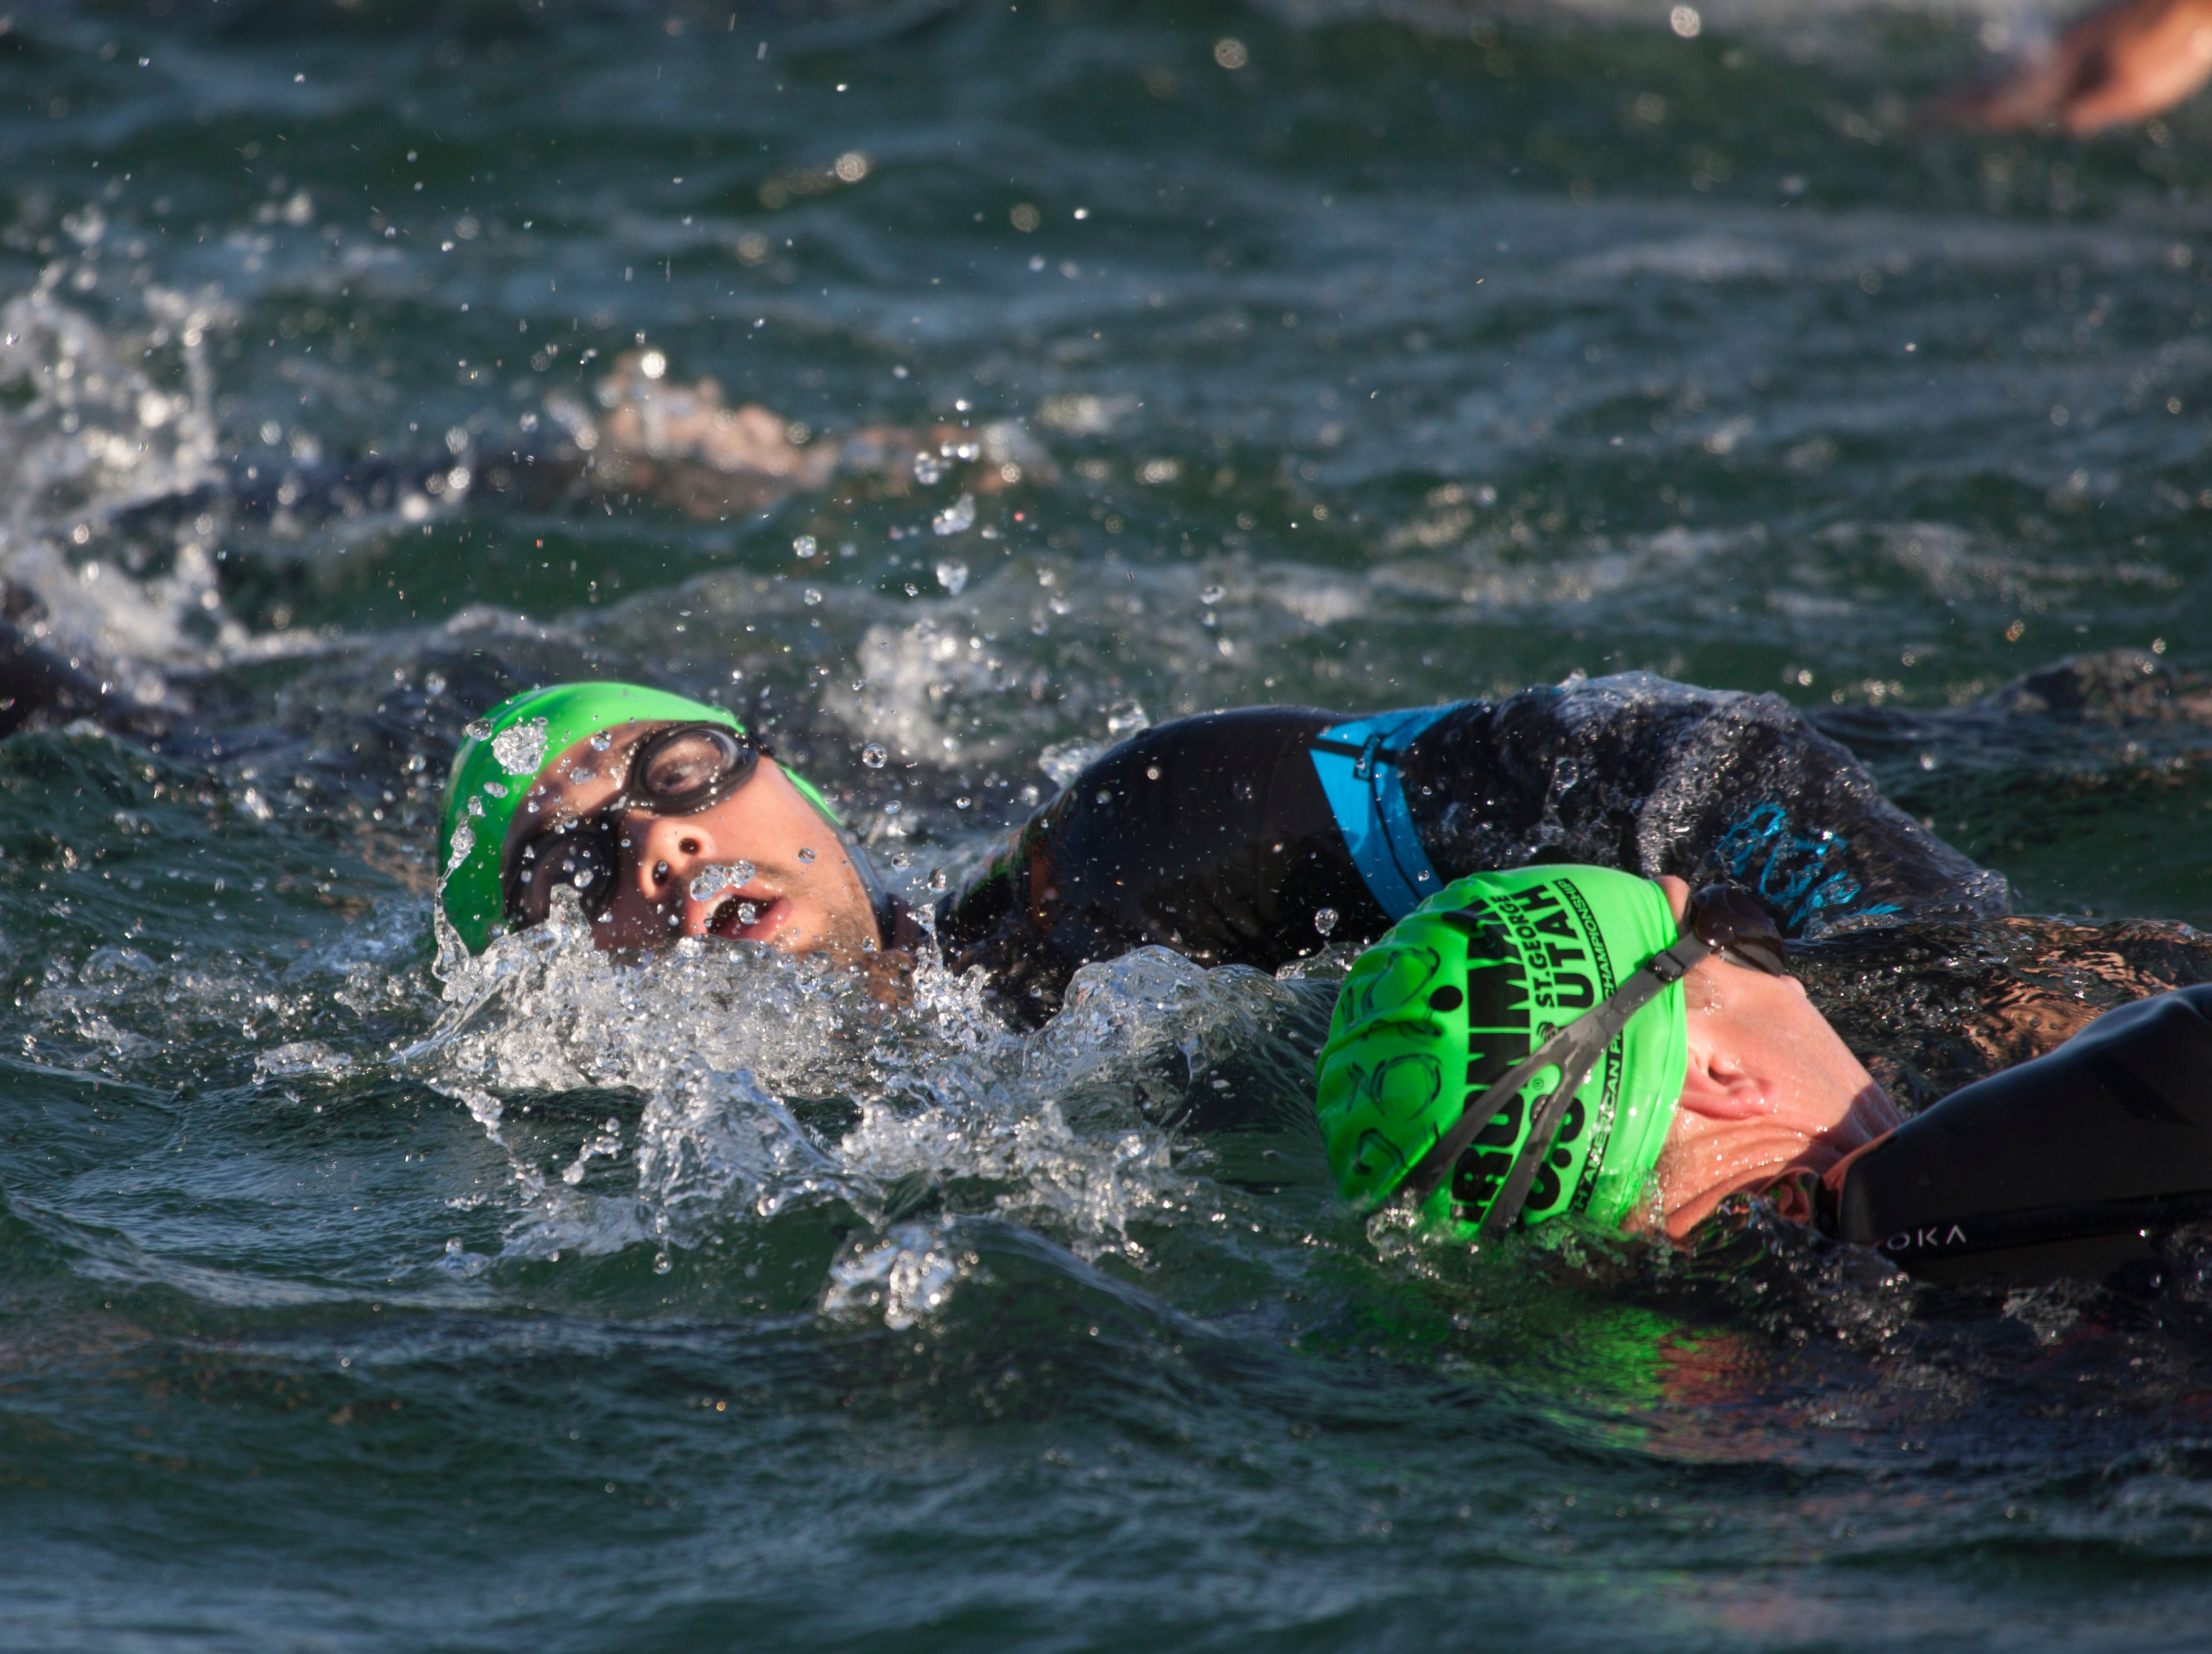 St. George Ironman contestants finish the swim portion of the race Saturday, May 4, 2019.